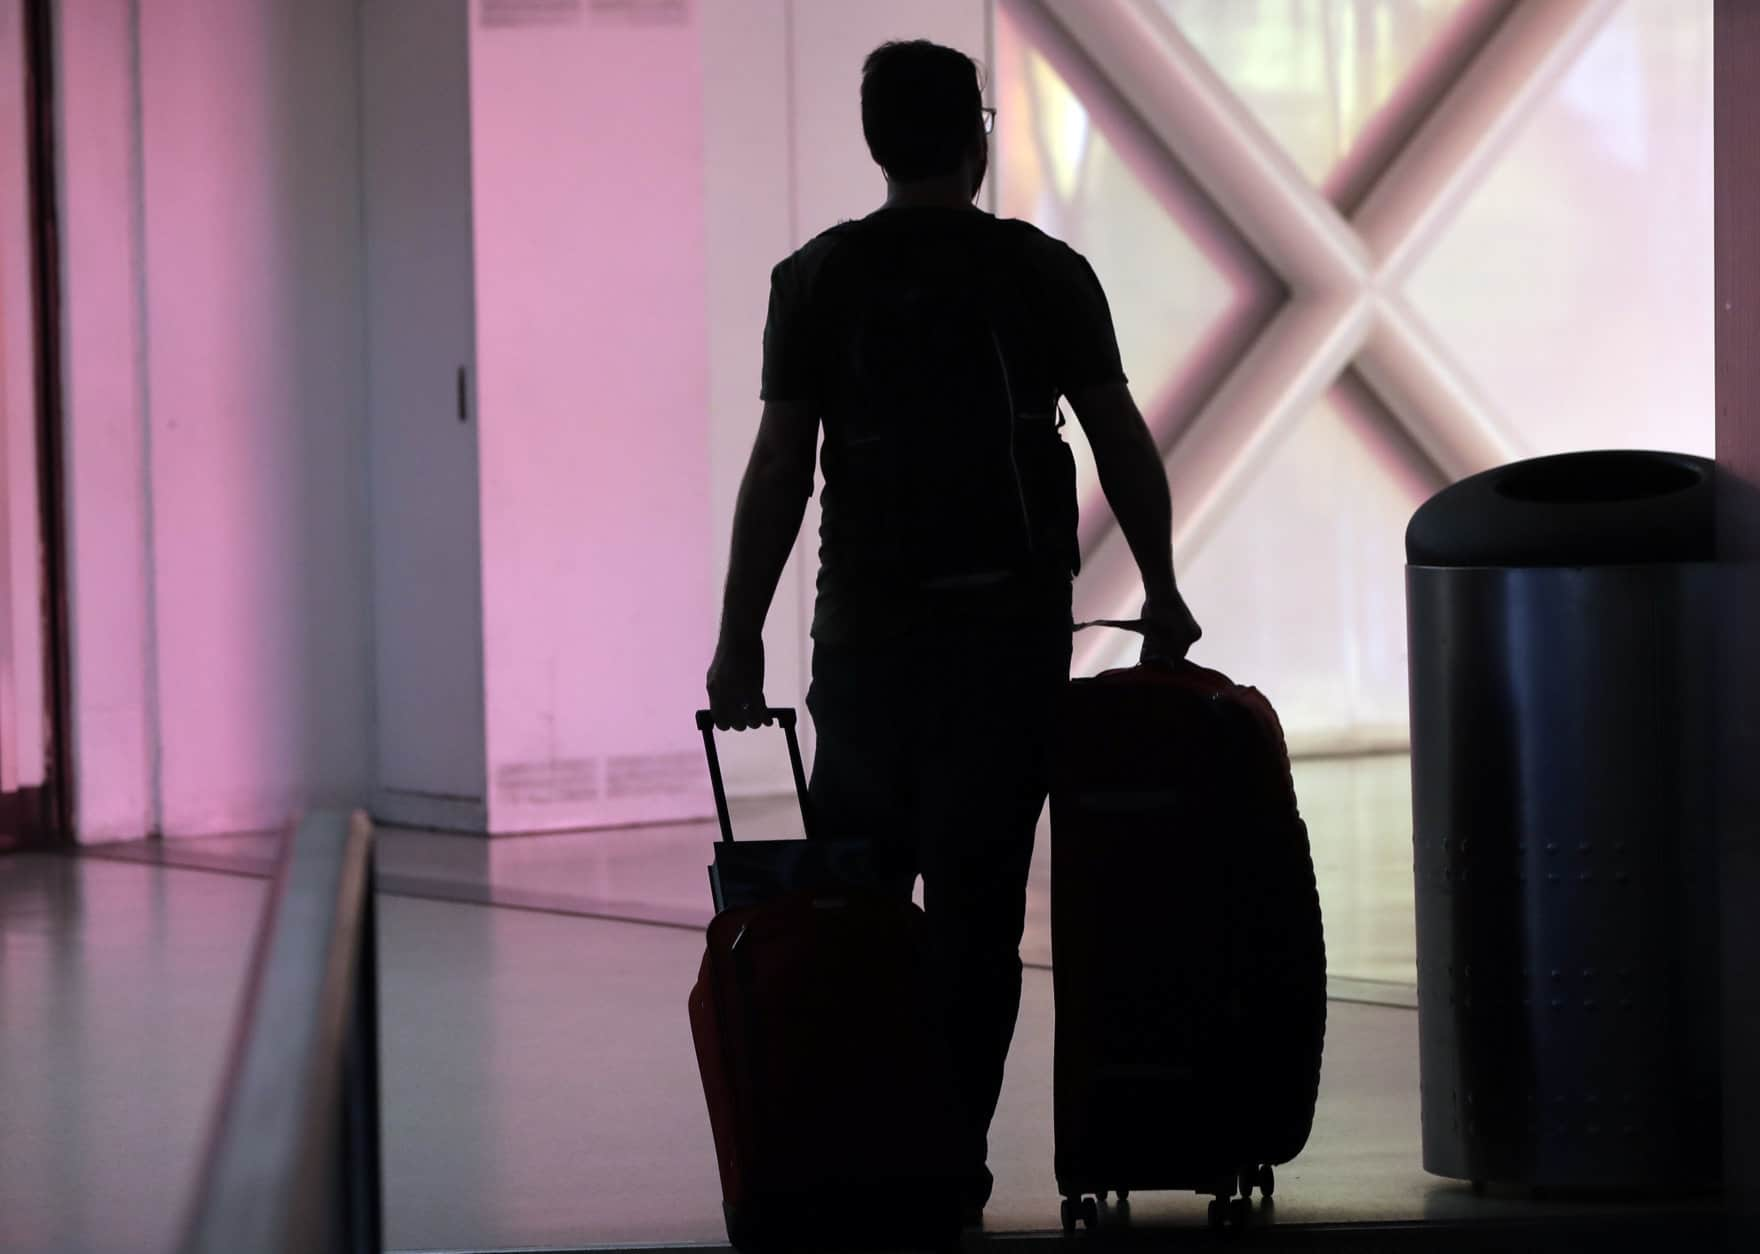 A traveler walks through Miami International Airport, Friday, Jan. 18, 2019, in Miami. The three-day holiday weekend is likely to bring bigger airport crowds. (AP Photo/Lynne Sladky)